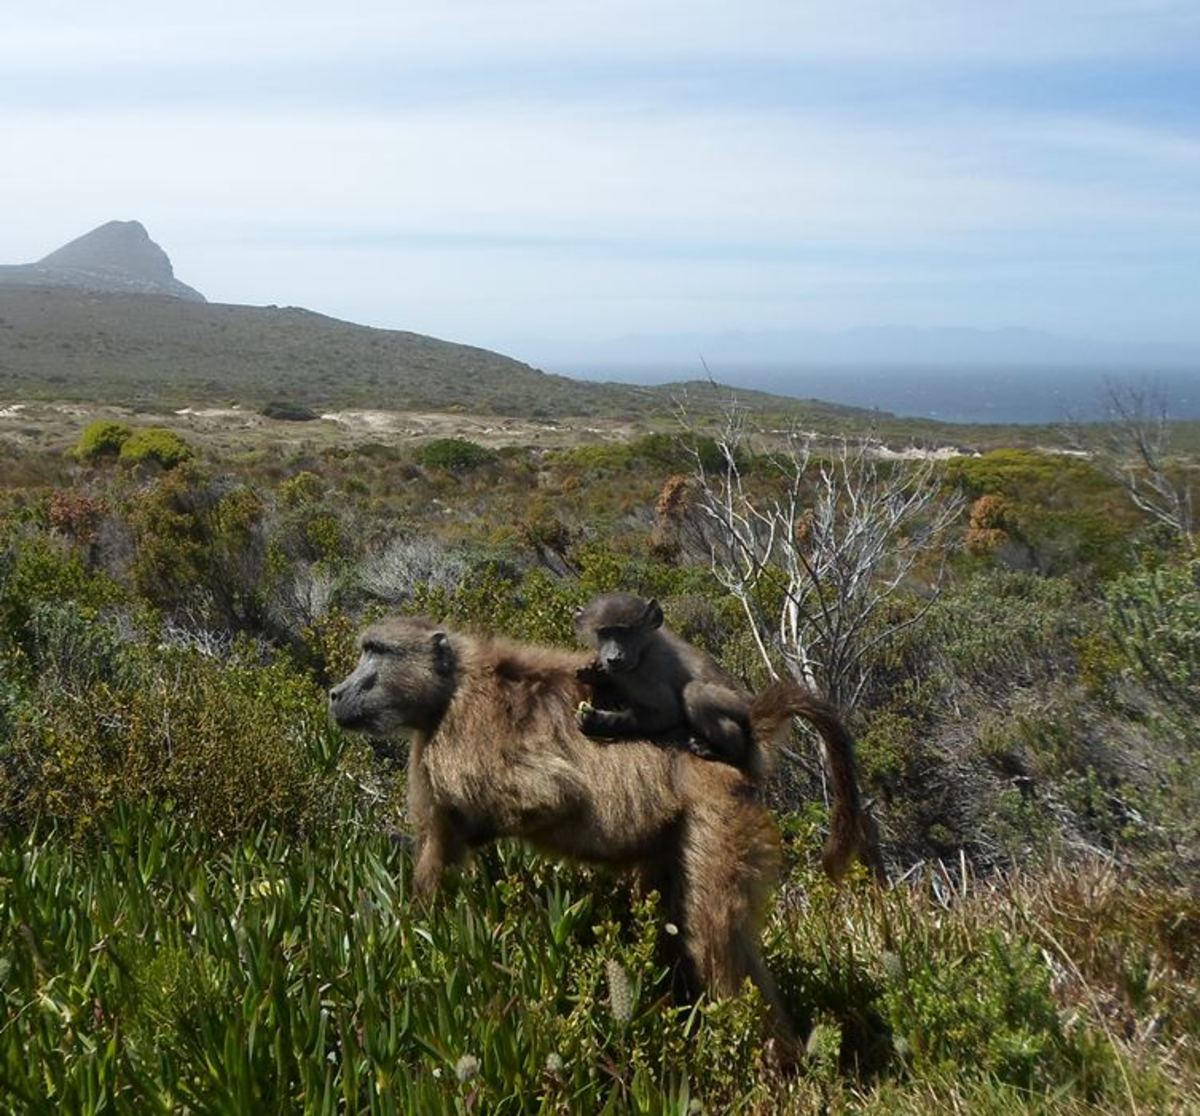 Cape baboon at Cape Point, Cape Peninsula, South Africa